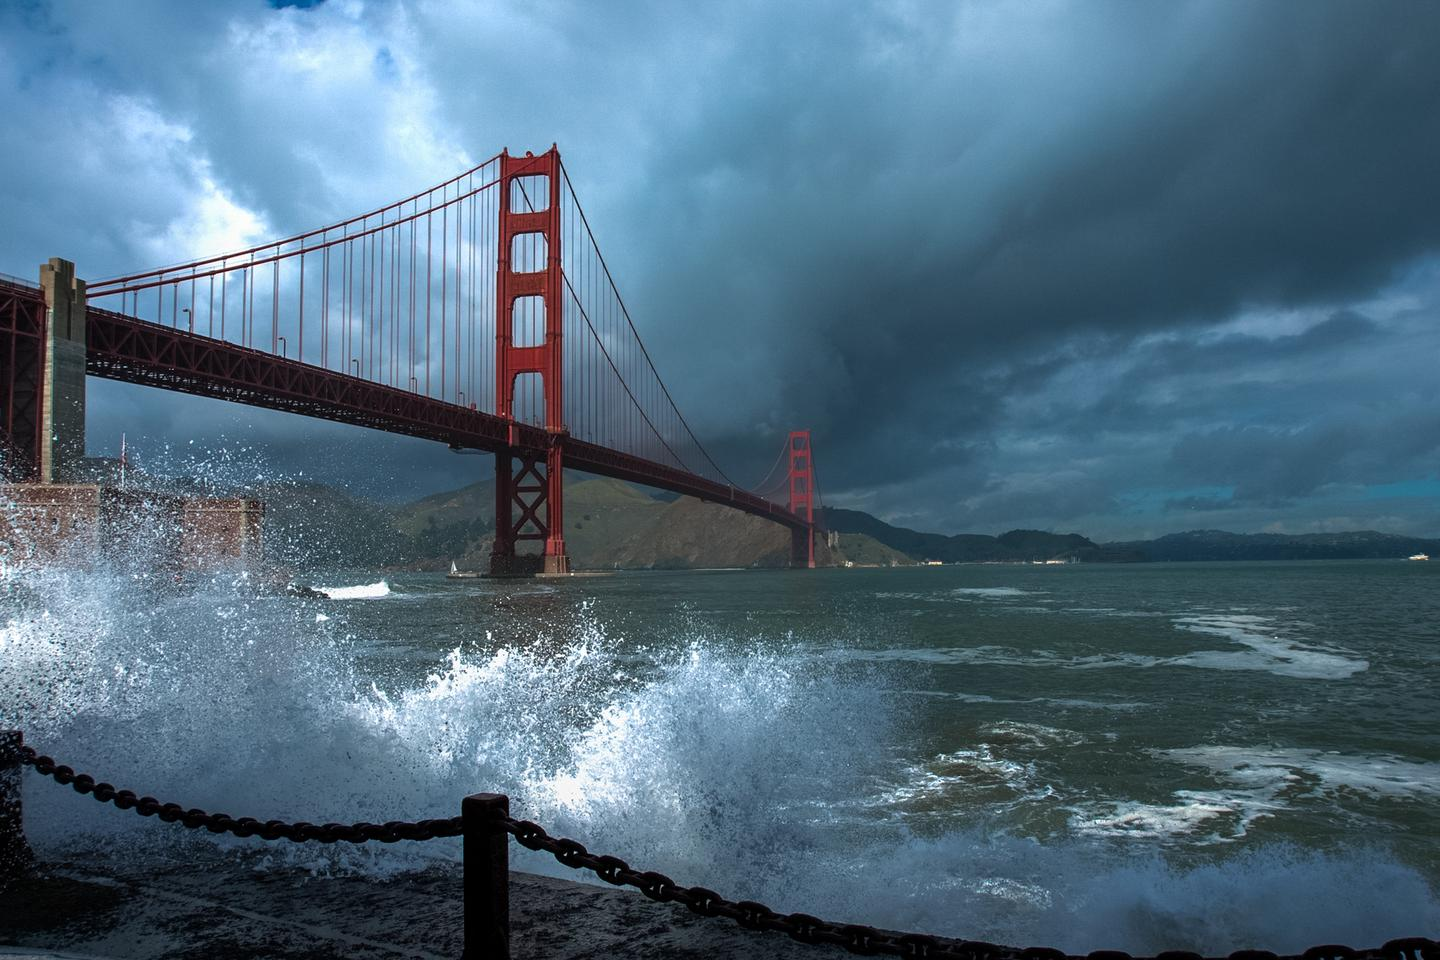 Storm over the Golden GateThe Golden Gate Bridge is an iconic attraction year-round.